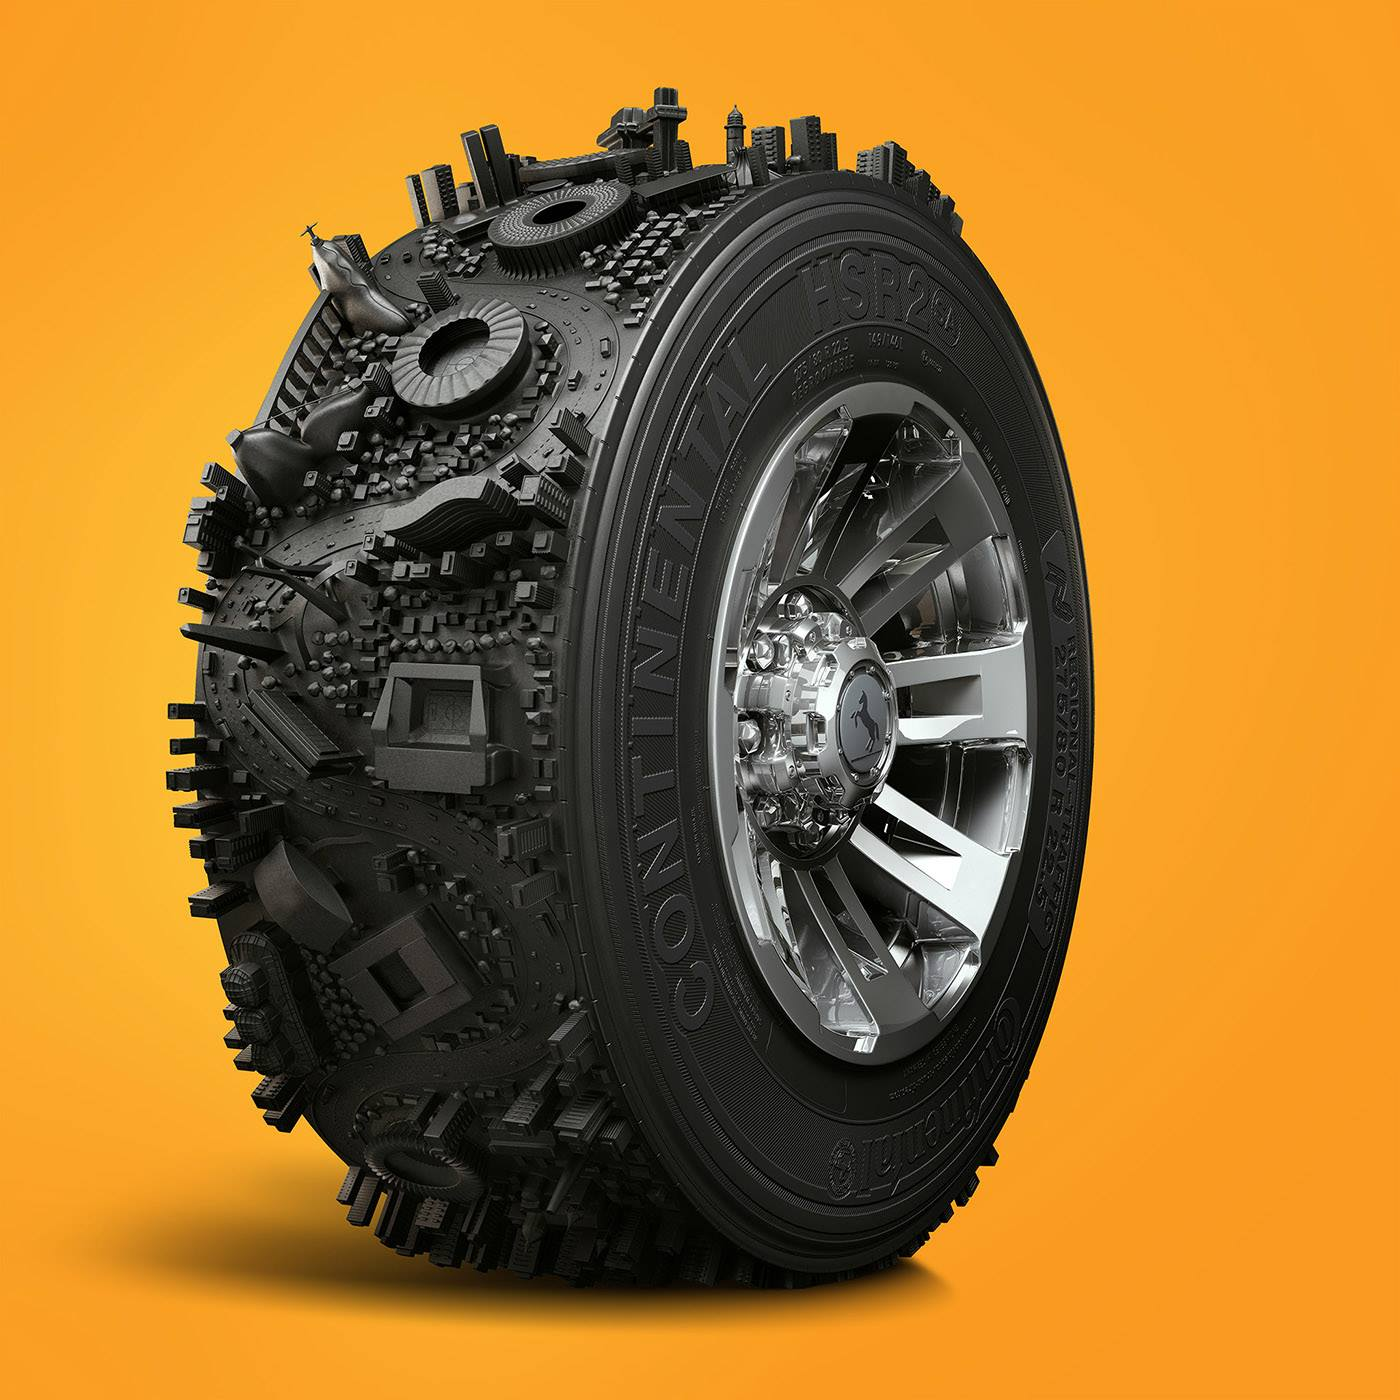 Pics I have picked #4 (Cities Under Tires)